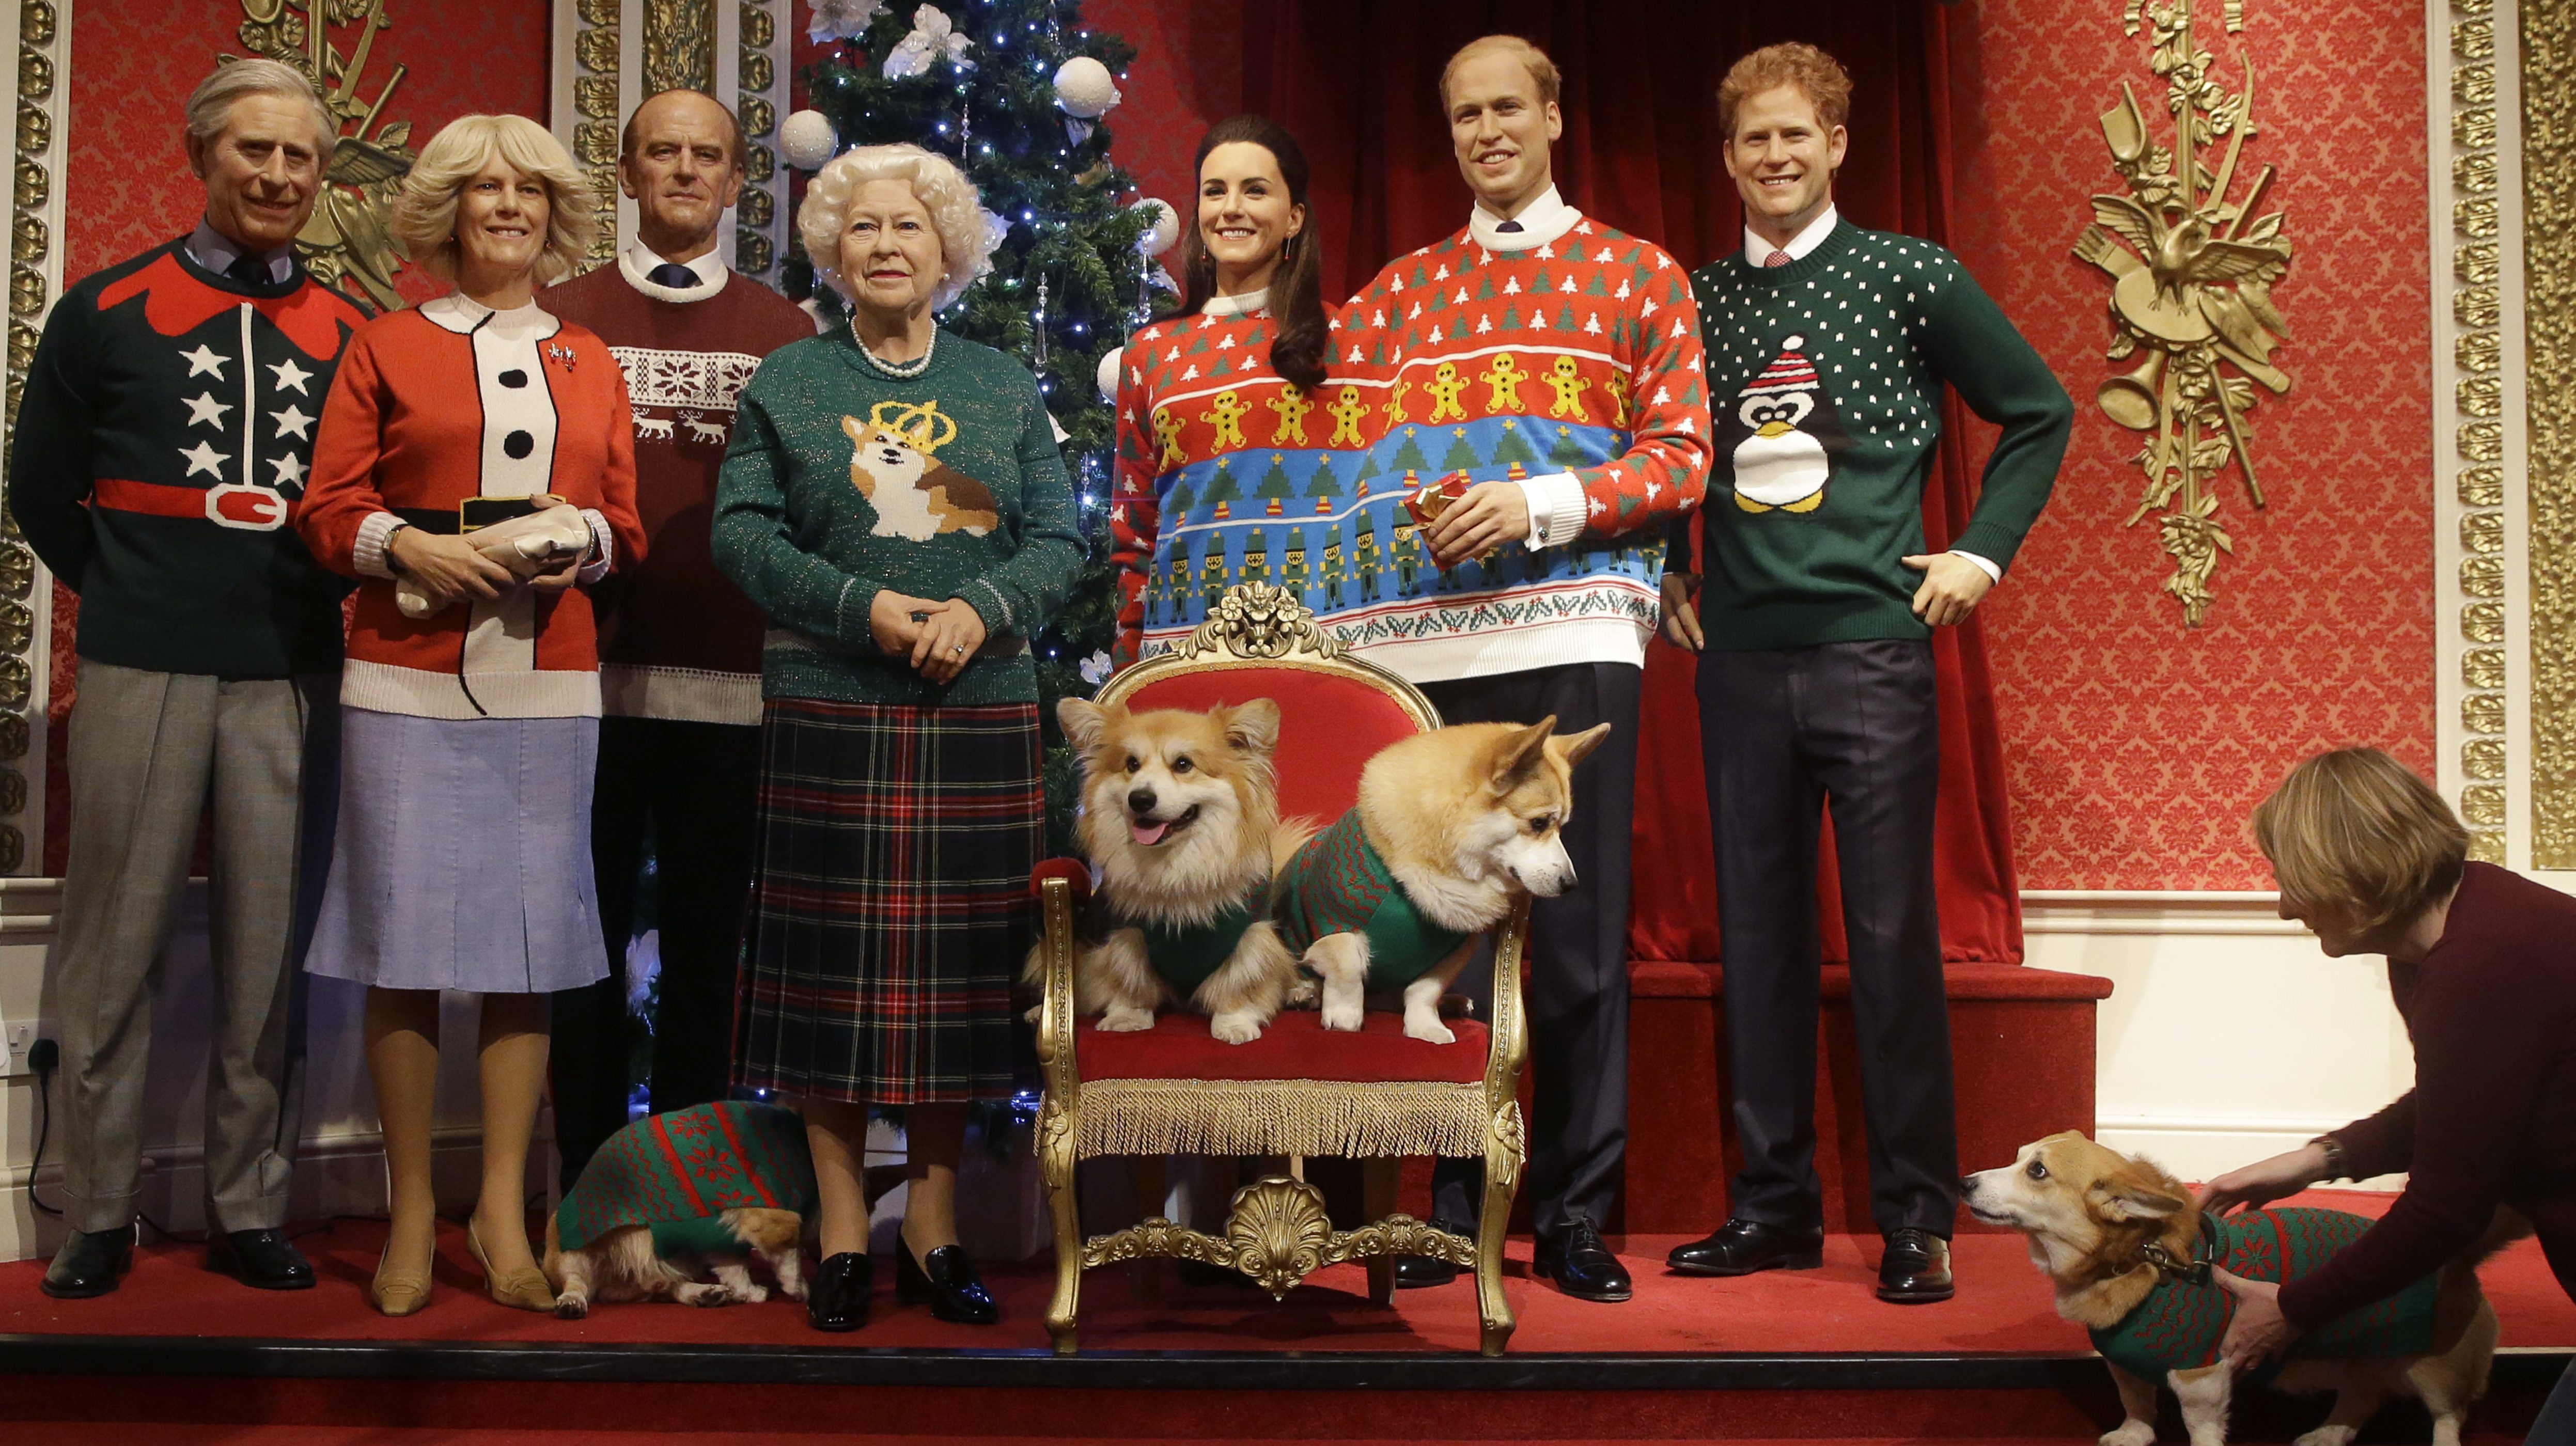 Four Corgi dogs pose next to wax work models of the British Royal family wearing colorful Christmas jumpers at Madame Tussauds wax works in London, Tuesday, Dec. 6, 2016.